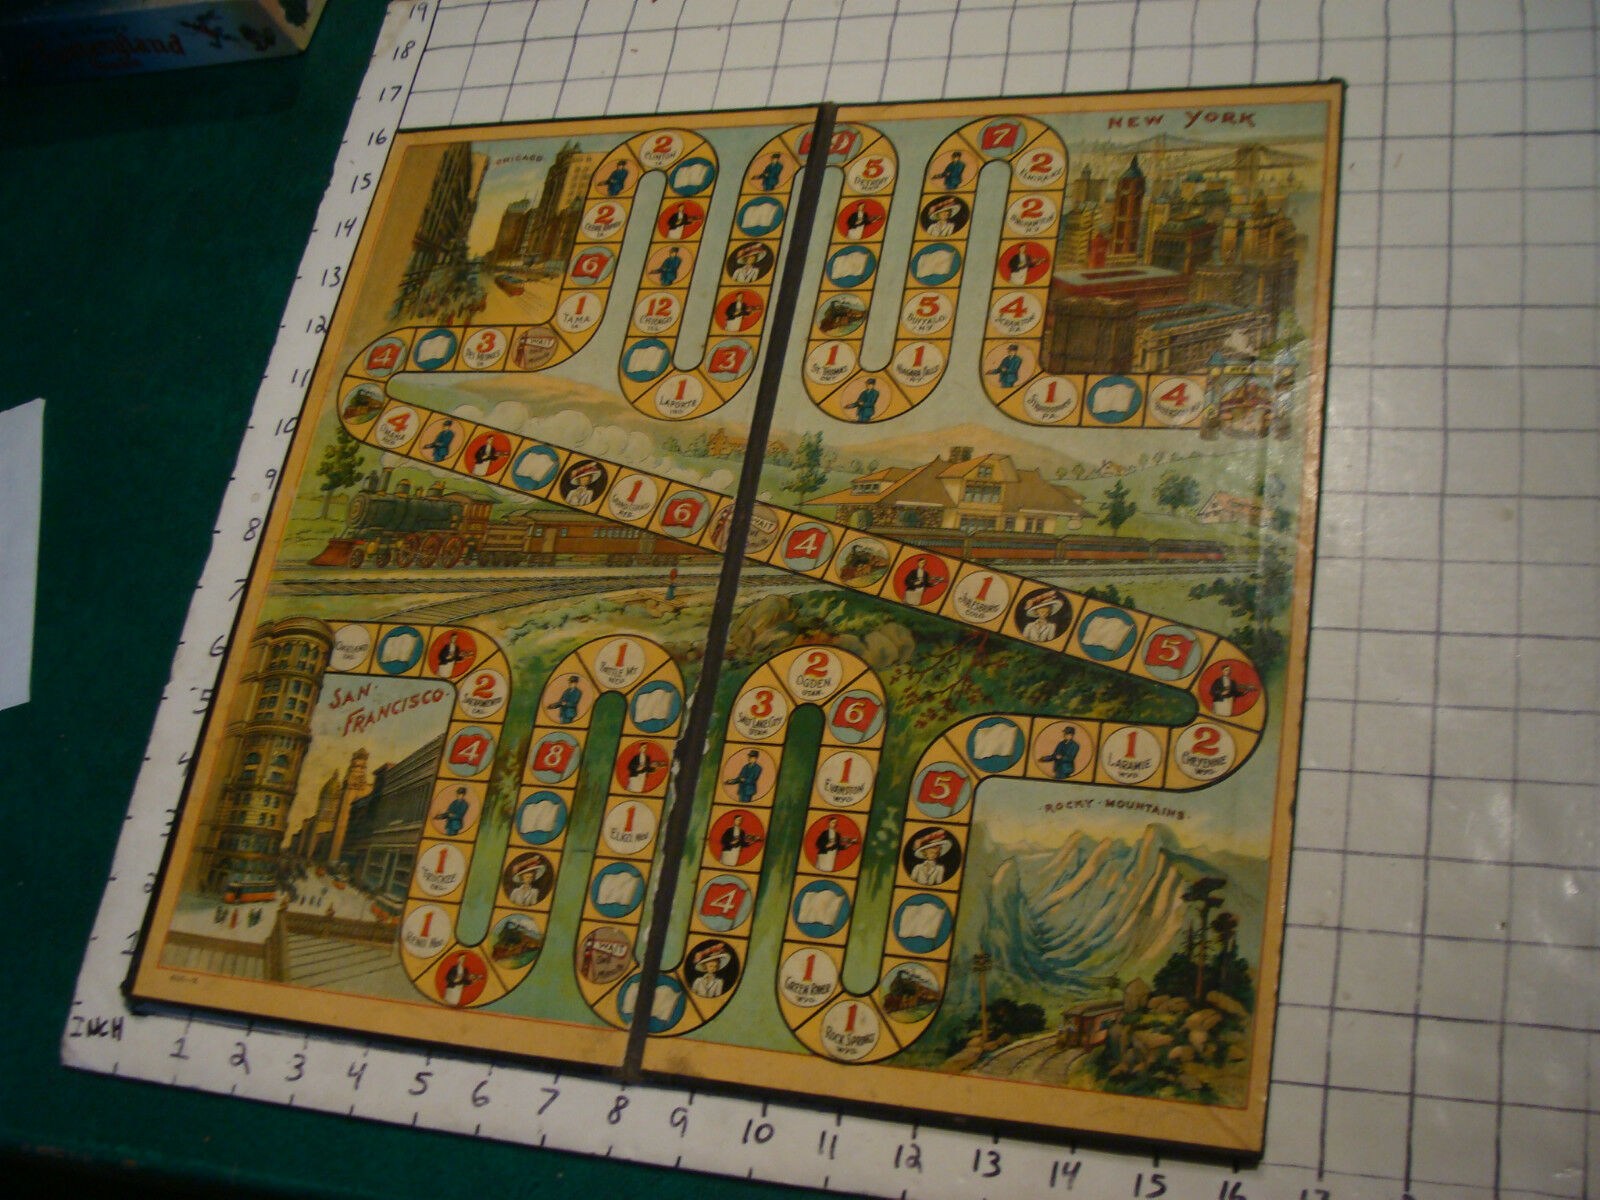 Early  McLoughlin PHOEBE SNOW gioco tavola only, late 1800's or early 1900's  costo effettivo